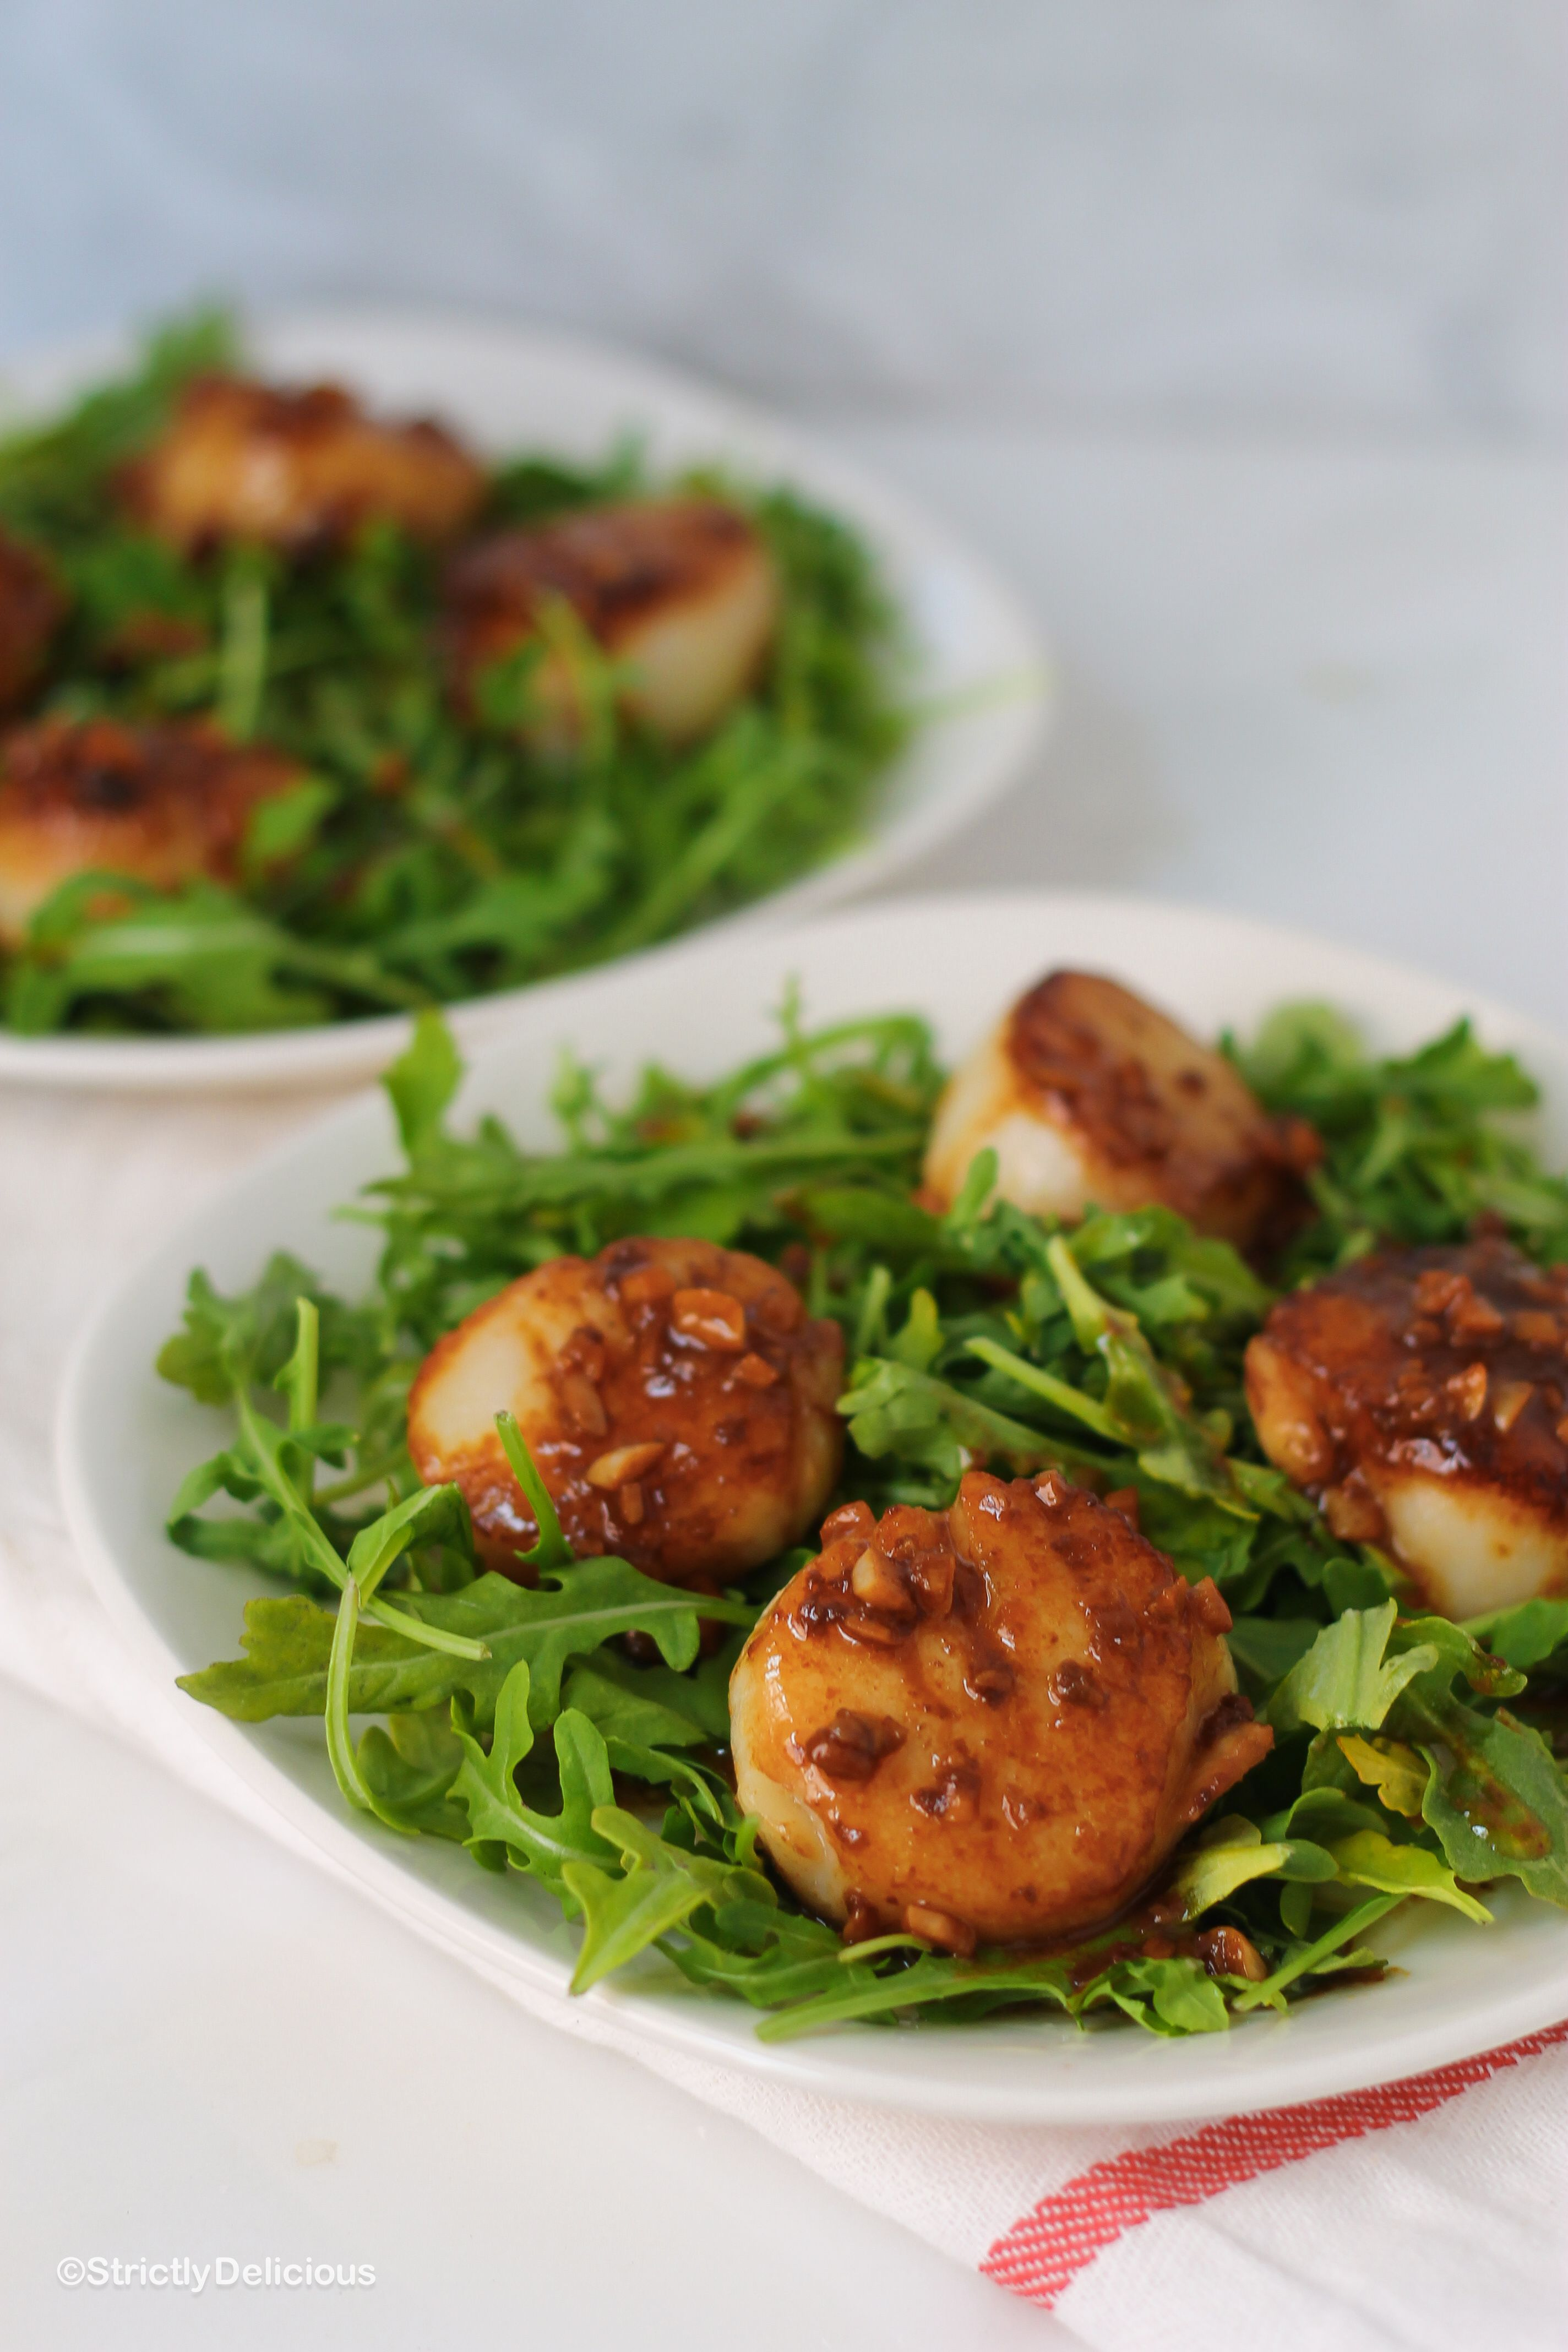 Seared Sea Scallops over Arugula with White Wine Garlic Sauce (sub garlic-infused oil for garlic) / Strictly Delicious